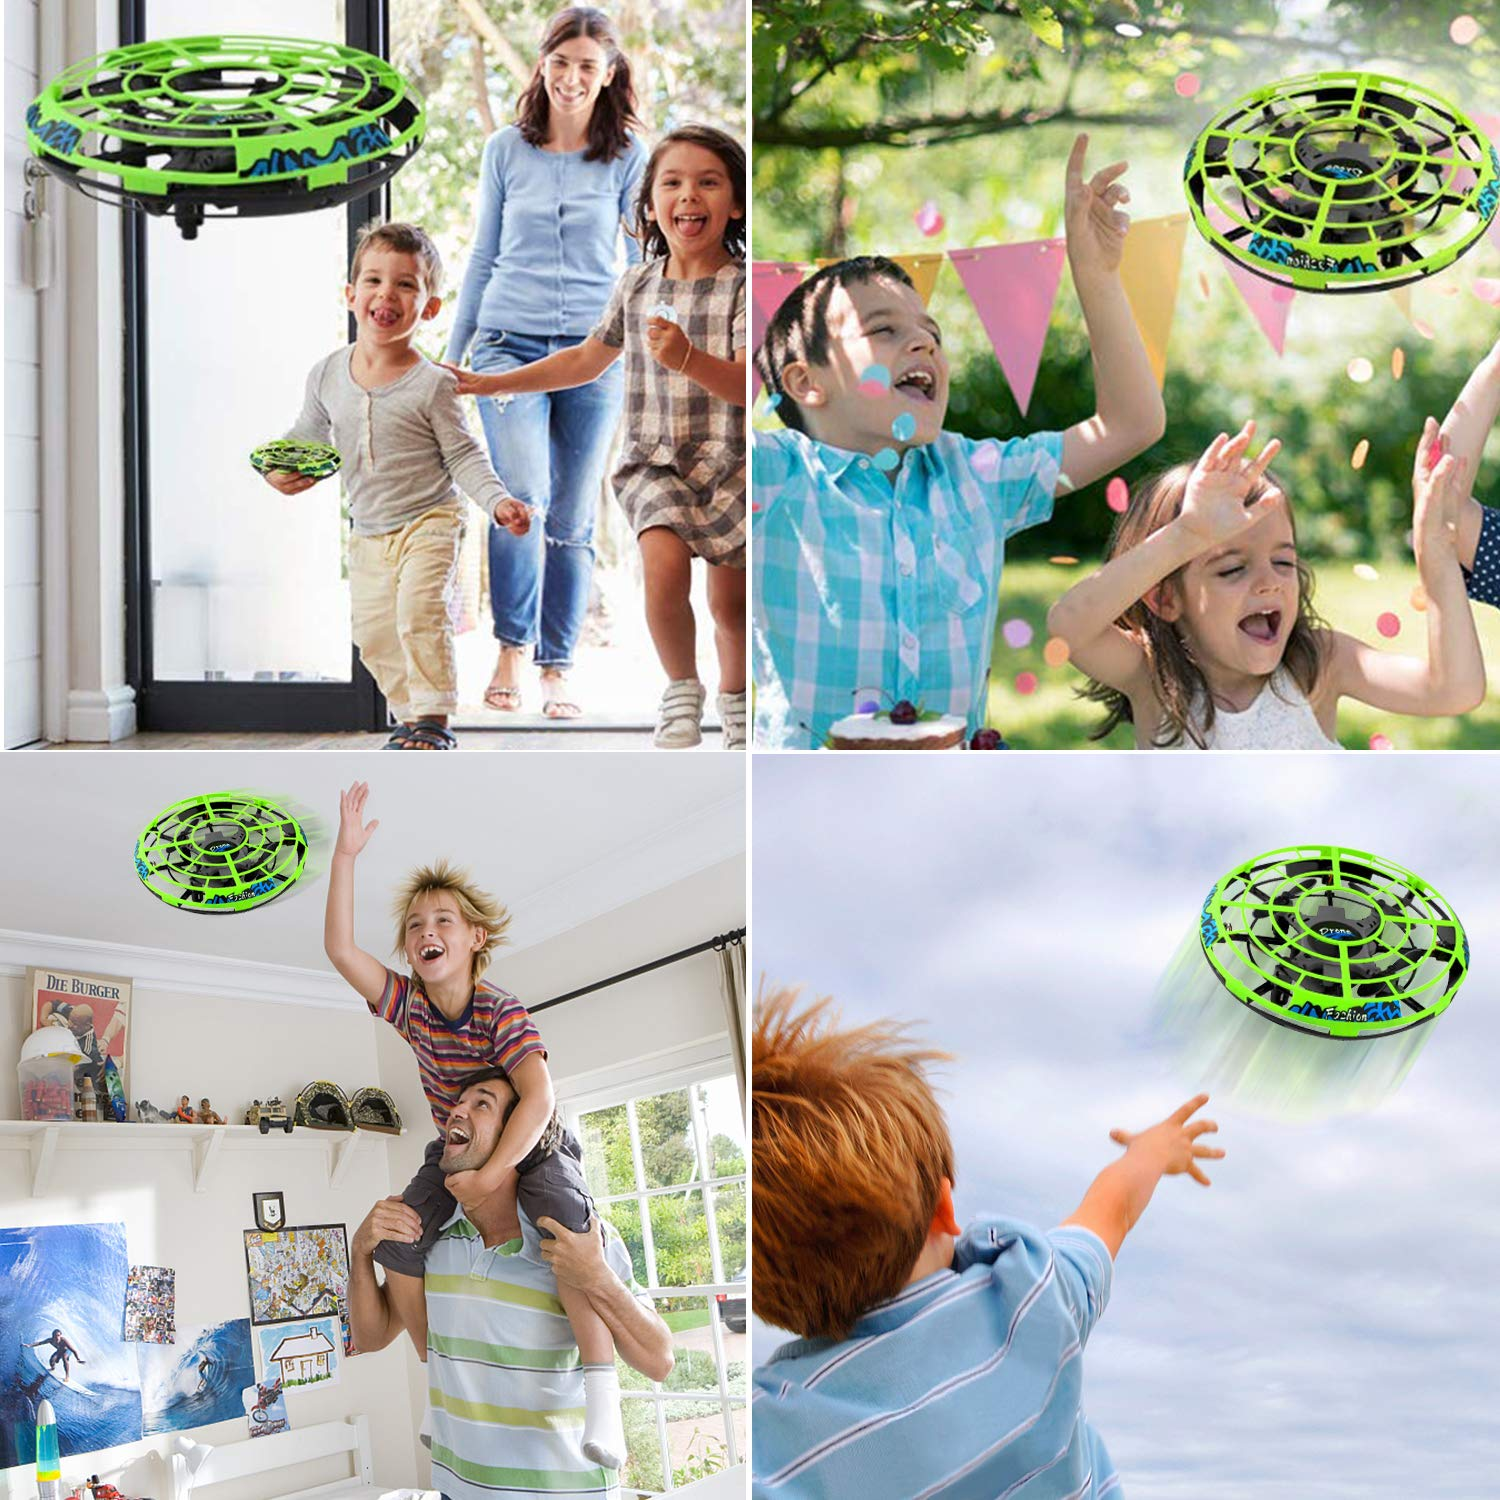 Flying Ball RC Mini Drone Flying Toys Birthday Gifts for Kids Boys Girls Airplane UFO Shape Outdoor Play Toys Remote Control Interactive Infrared Induction Helicopter Flying Saucer Toys 360° Rotating by TURNMEON    (Image #5)